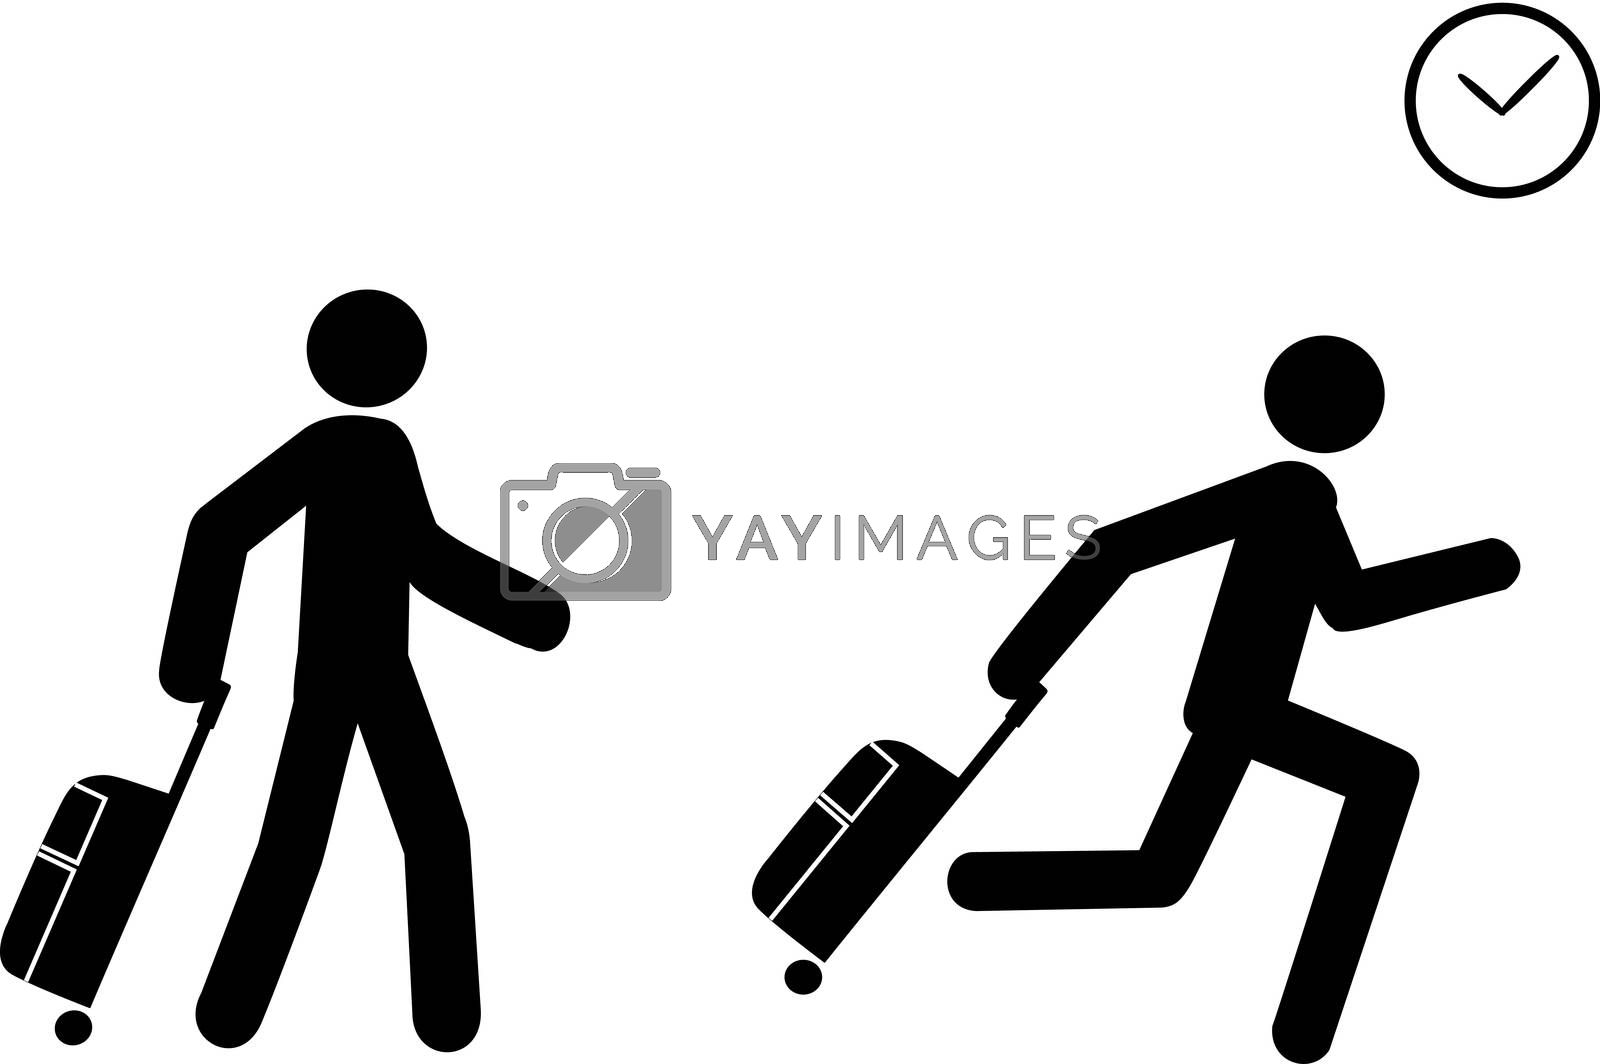 A person depicted as a human representation pushes a travel bag and starts to run as he sees a clock, indicating he is late to board or to check in.